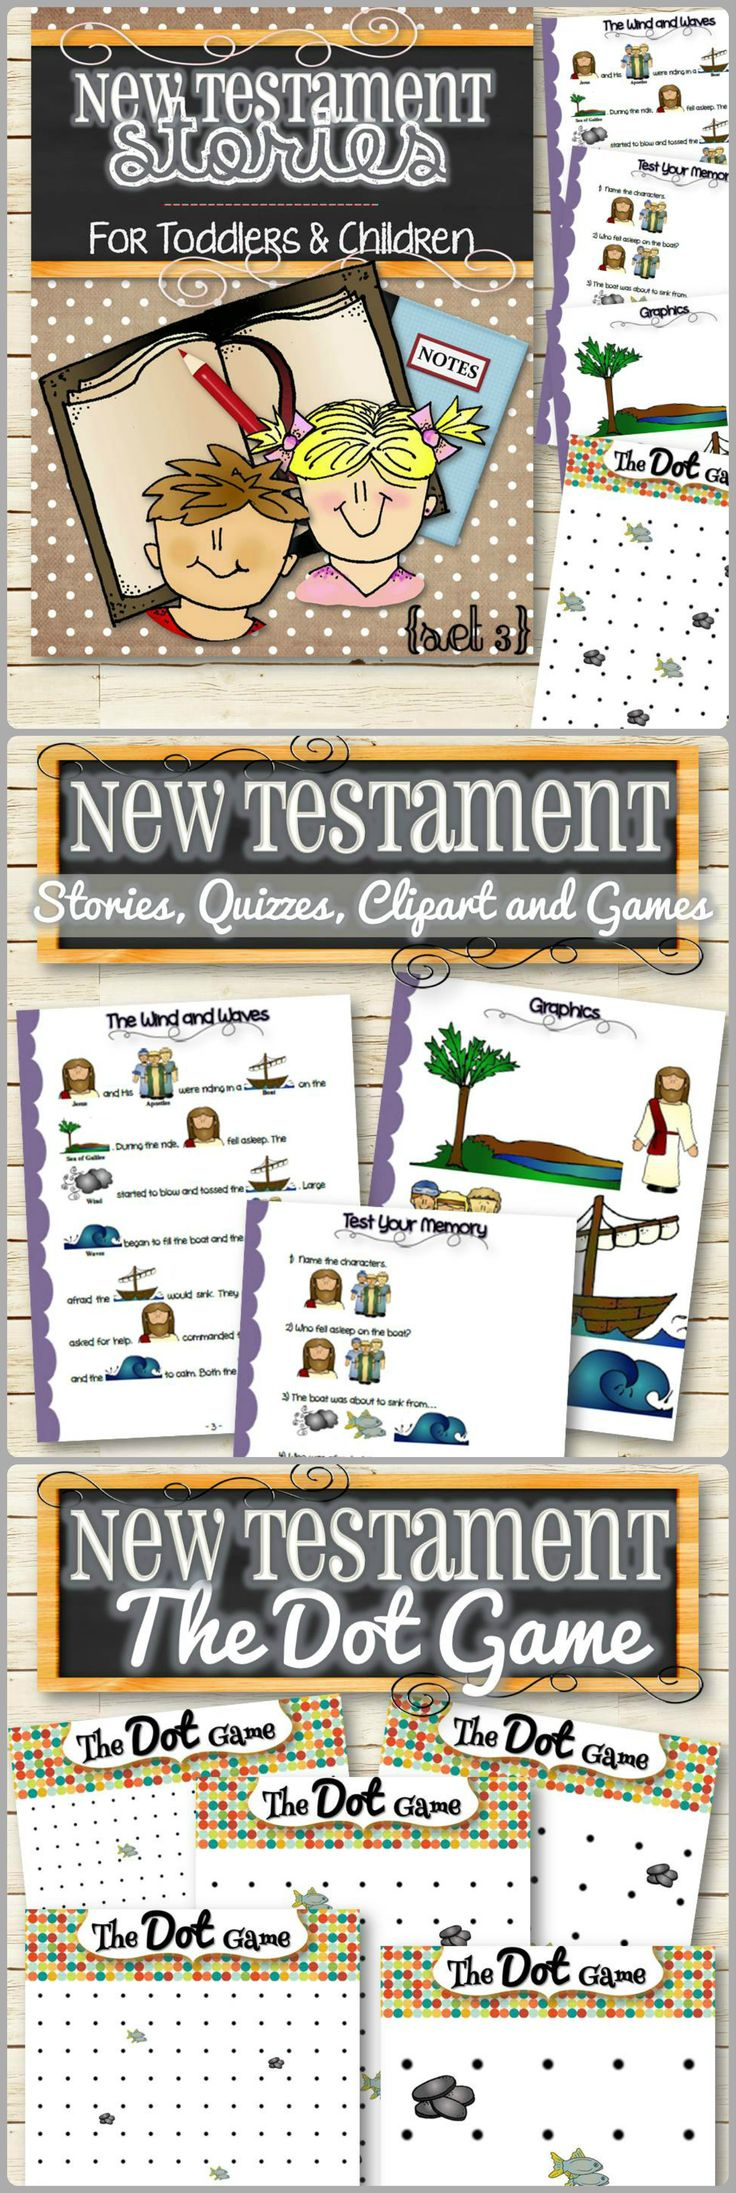 529 best bible lessons images on pinterest kids bible